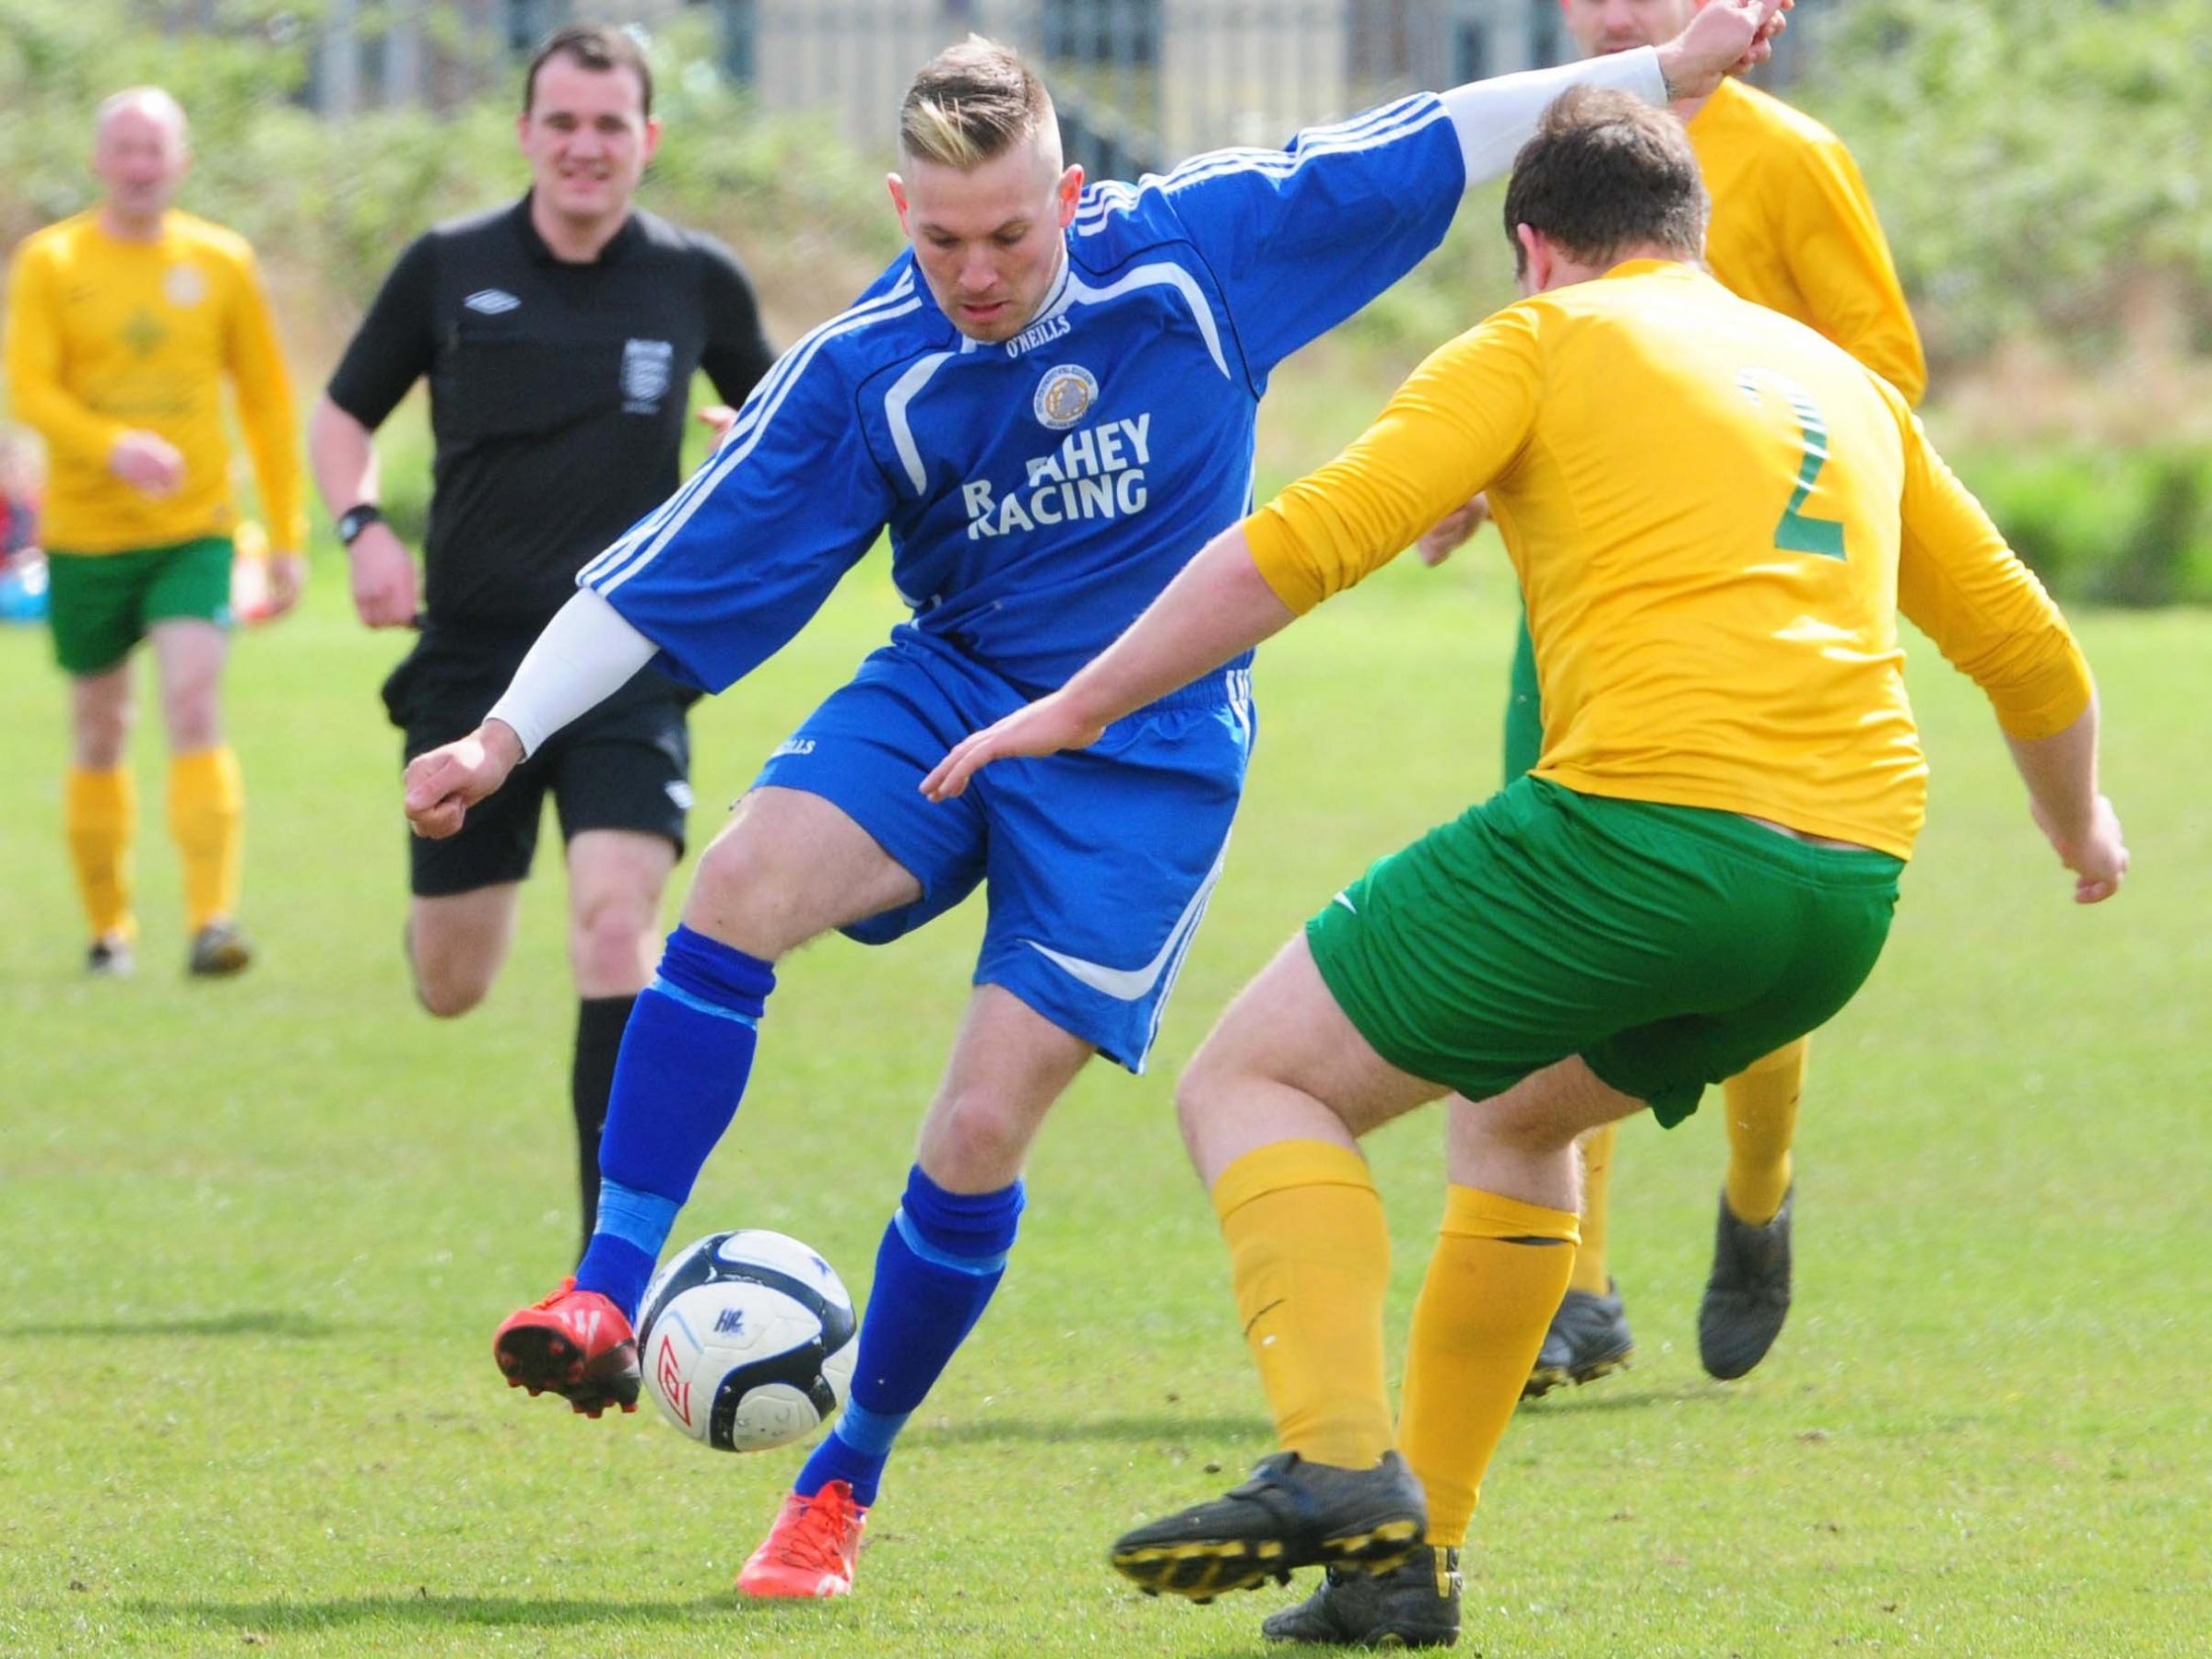 Marcus Godsell  in action for Old Malton St Mary's against Huntington Rovers